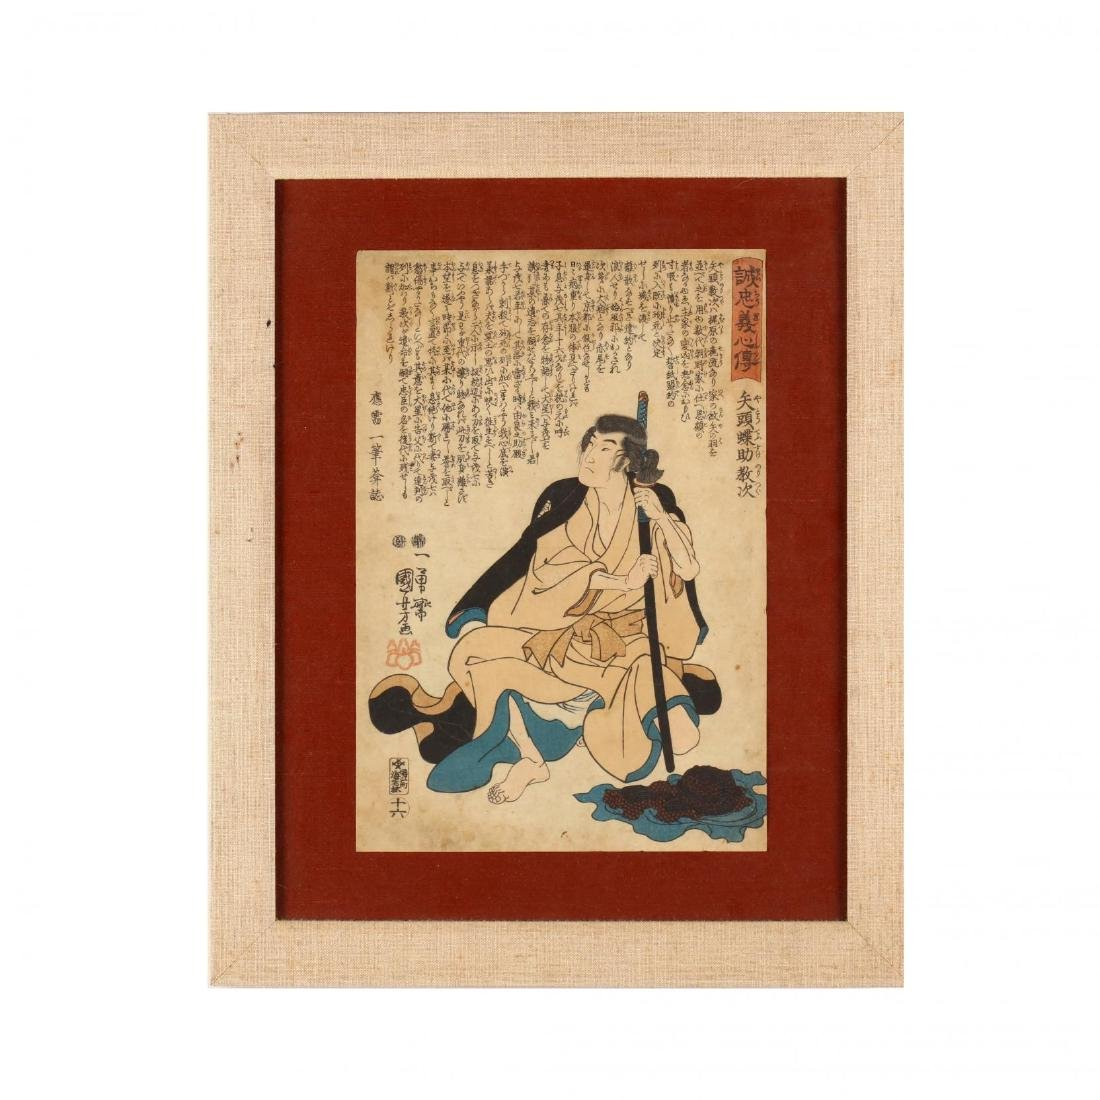 Two Japanese Woodblock Prints by Kunisada and Kuniyoshi - 2